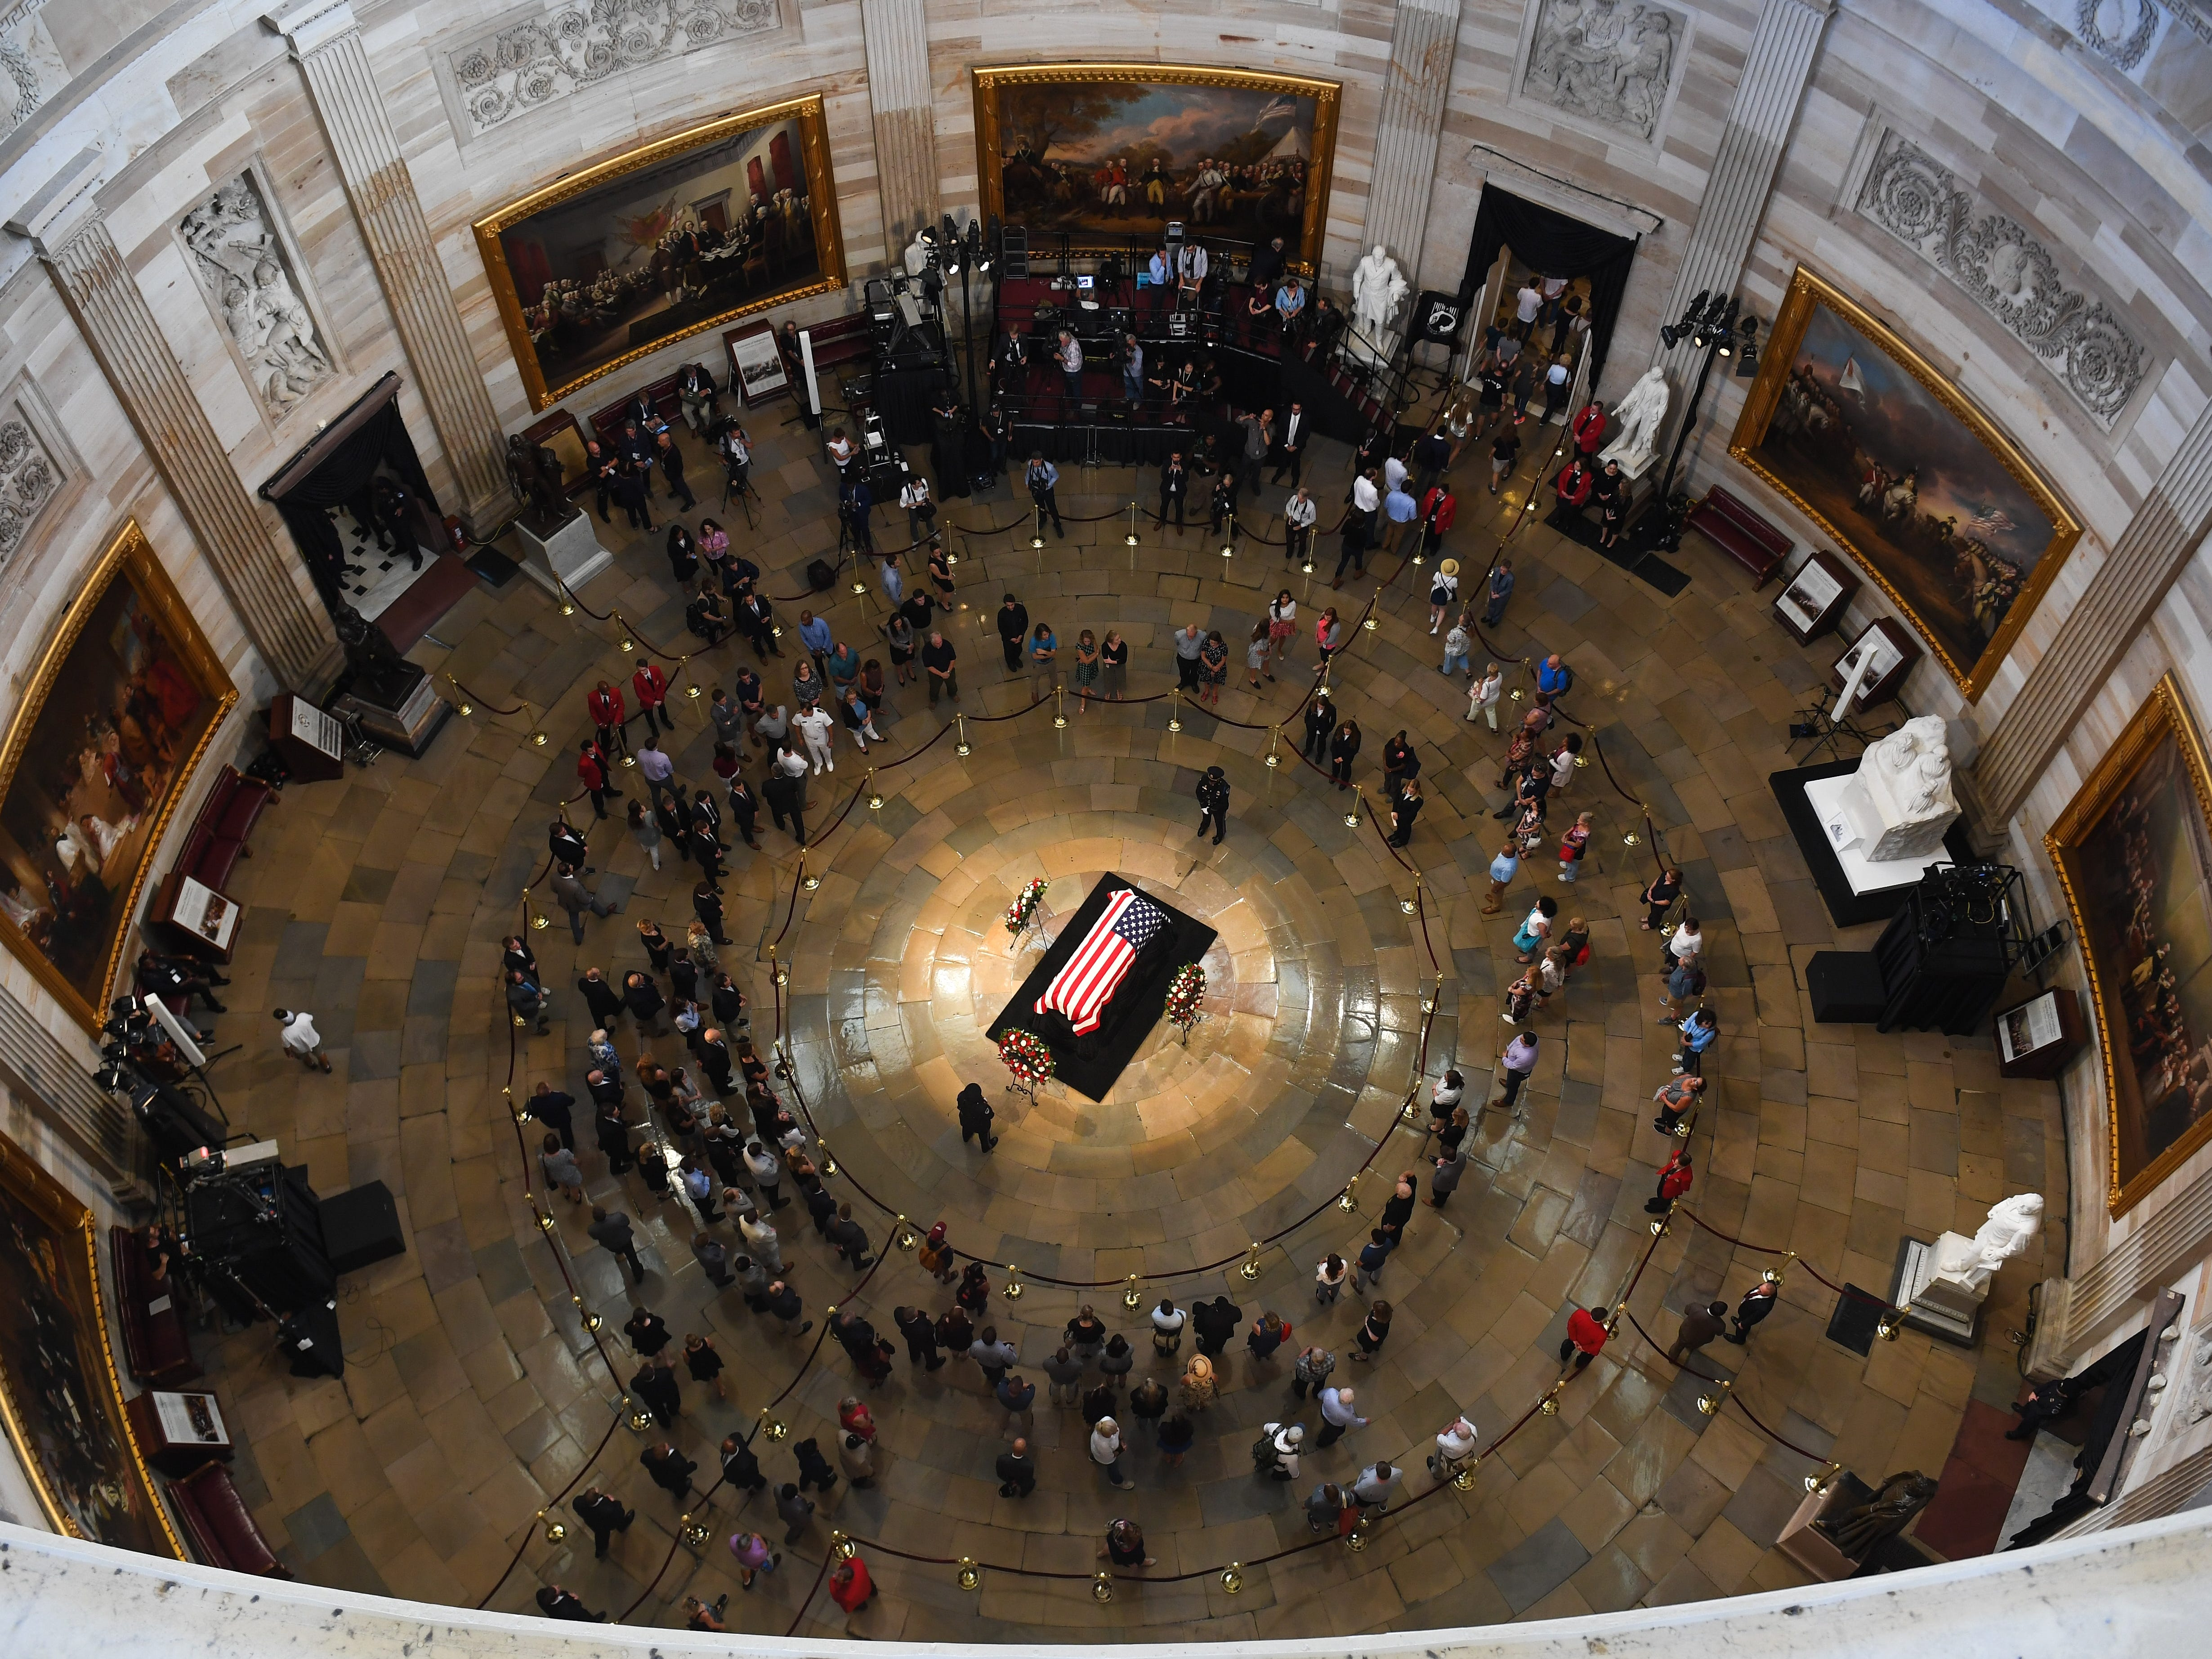 8/31/18 1:57:44 PM -- Washington, DC, U.S.A  -- The body of John McCain lying in state at the U.S. Capitol in Washington on Aug. 31, 2018 in Washington. Sen. McCain died on Aug. 25. --    Photo by Jack Gruber, USA TODAY Staff ORG XMIT:  JG 137435 McCain U.S. Capi 8/31 (Via OlyDrop)